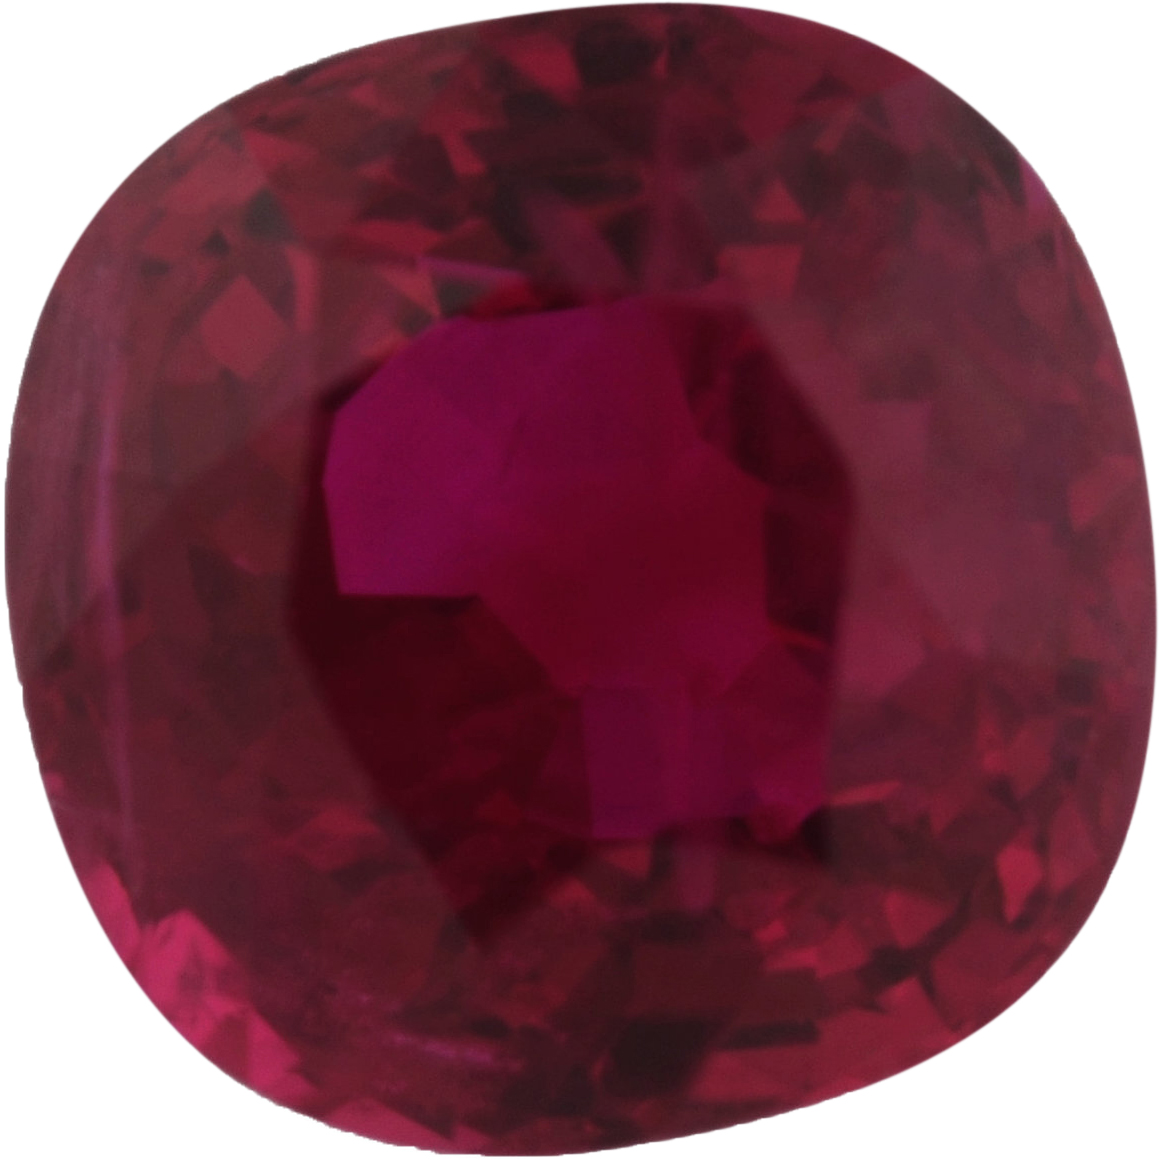 5.57 x 5.54 mm, Ruby Loose Gemstone in Antique Square Cut, Brownish Red, 1.11 carats